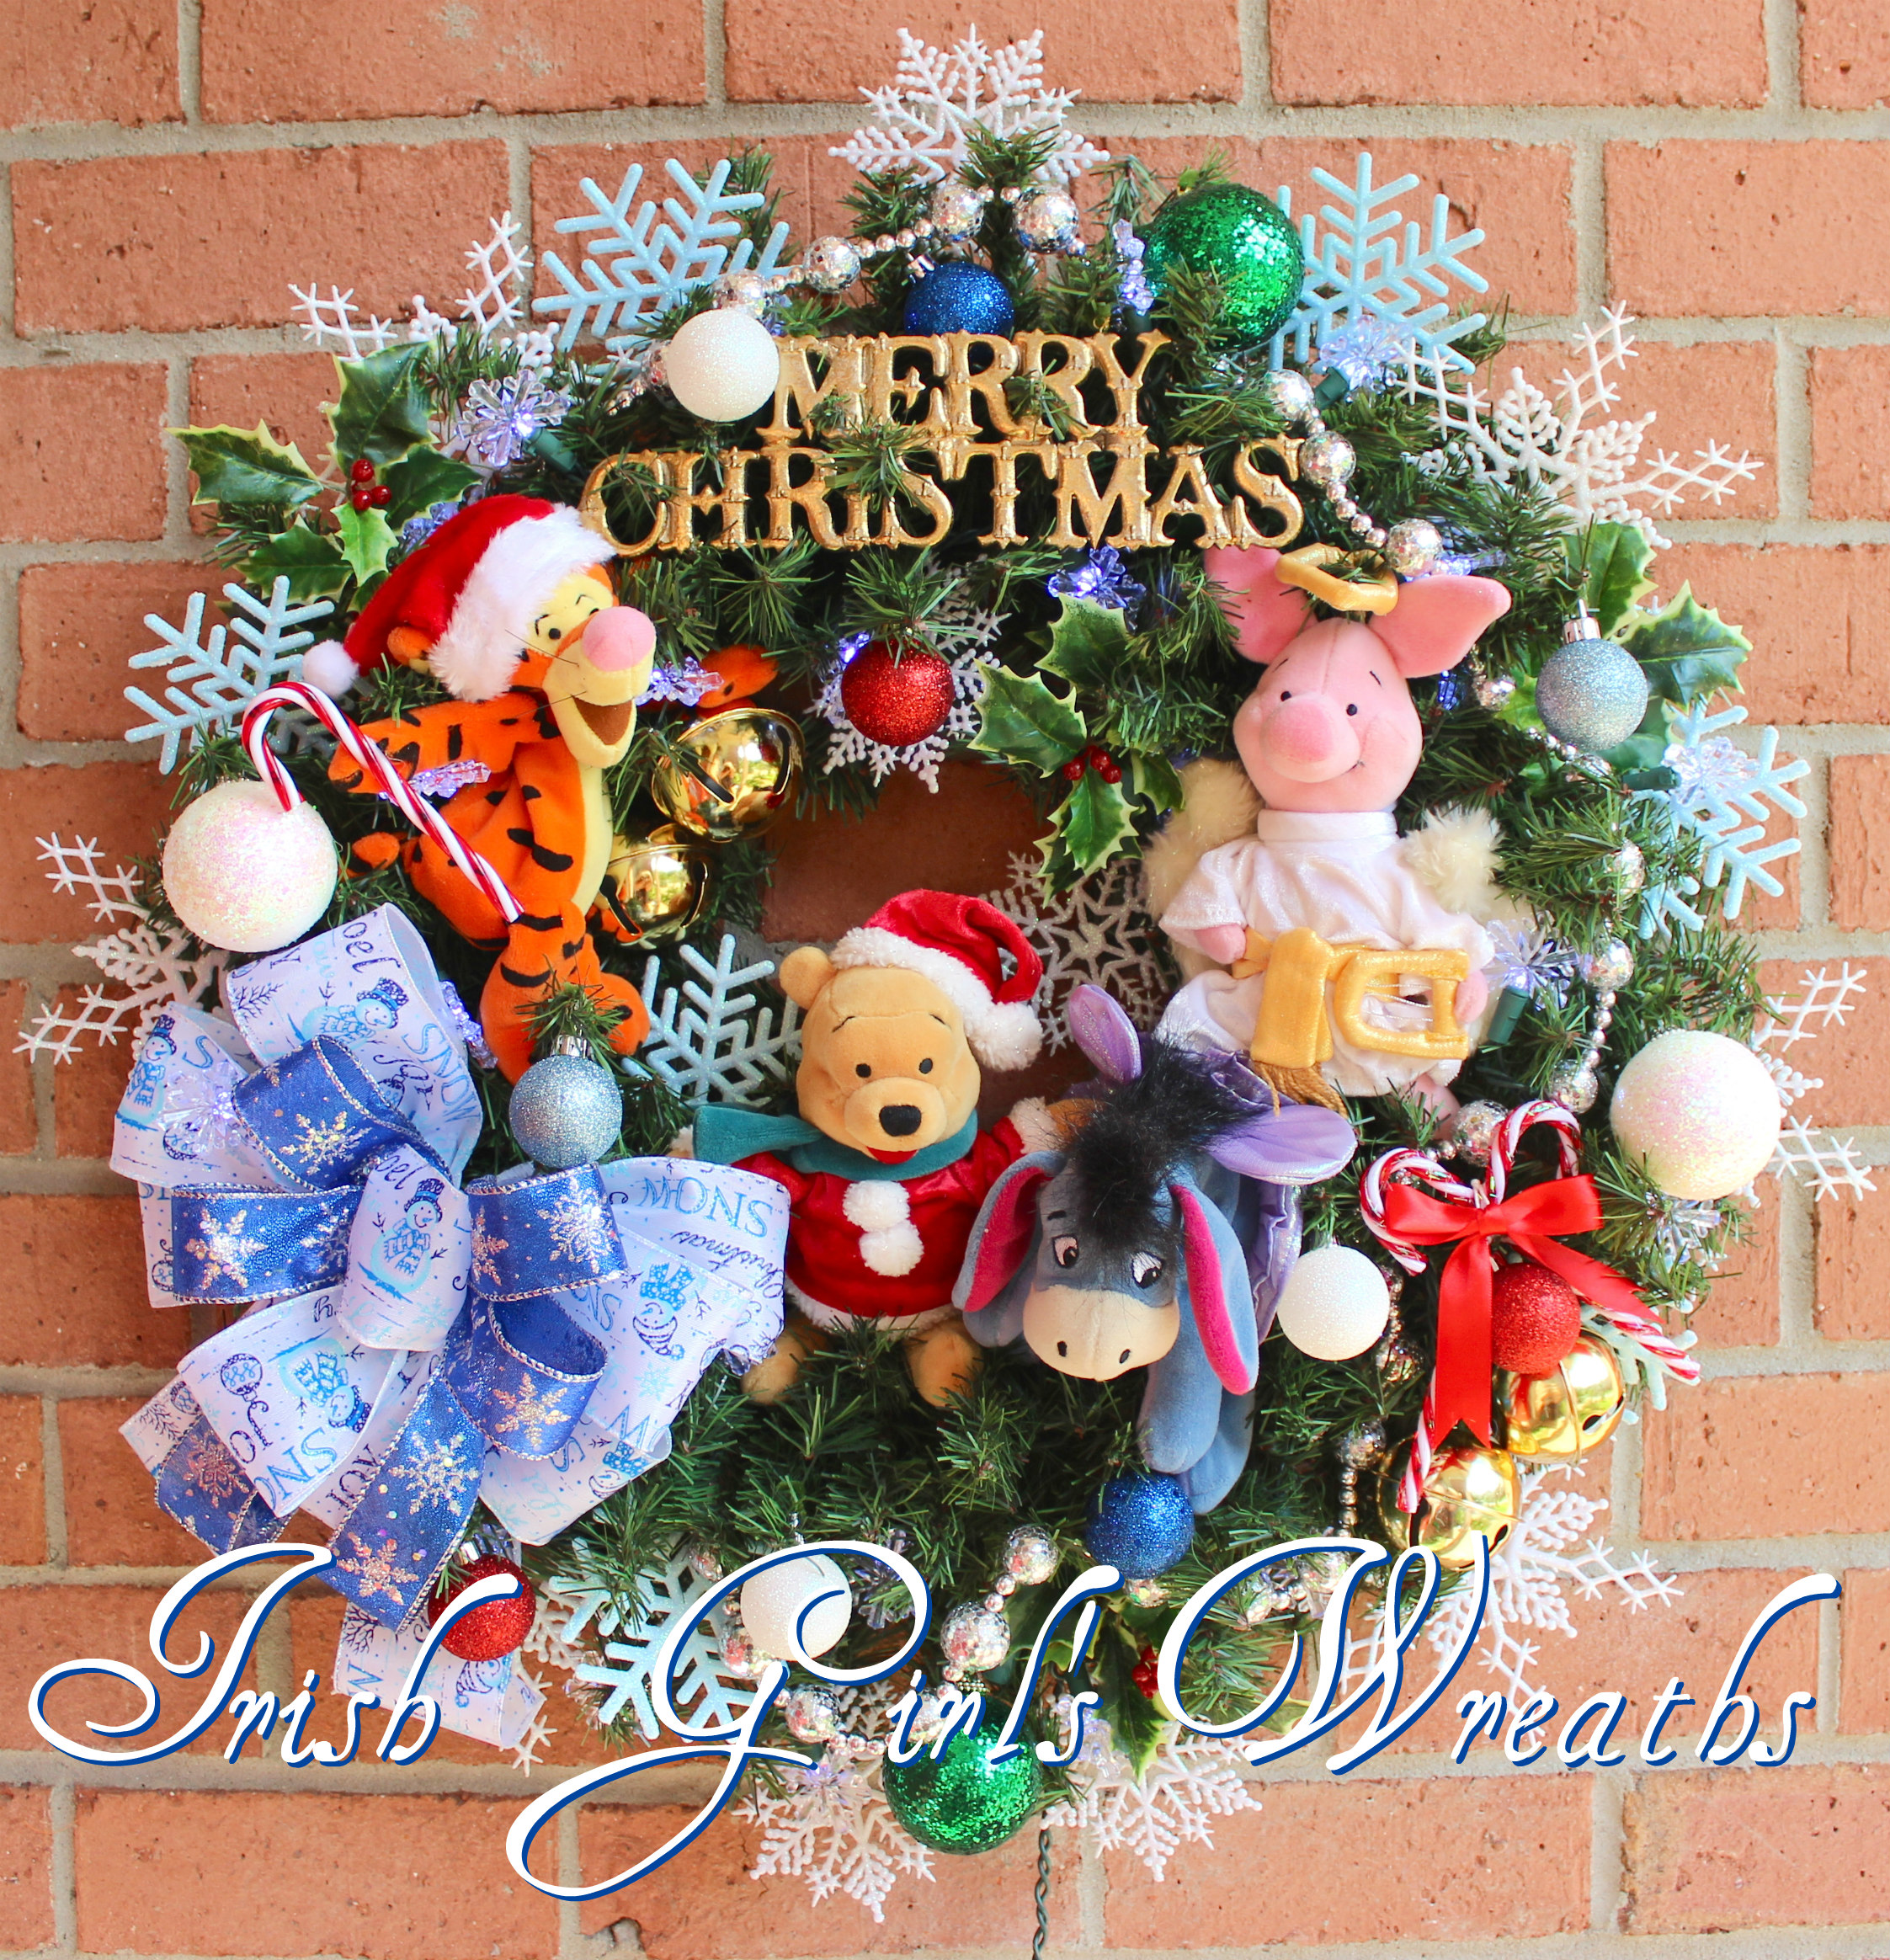 Winnie the Pooh & Friends Christmas Wreath, Pre-lit with LED Snowflake lights, Eeyore, Piglet, Tigger